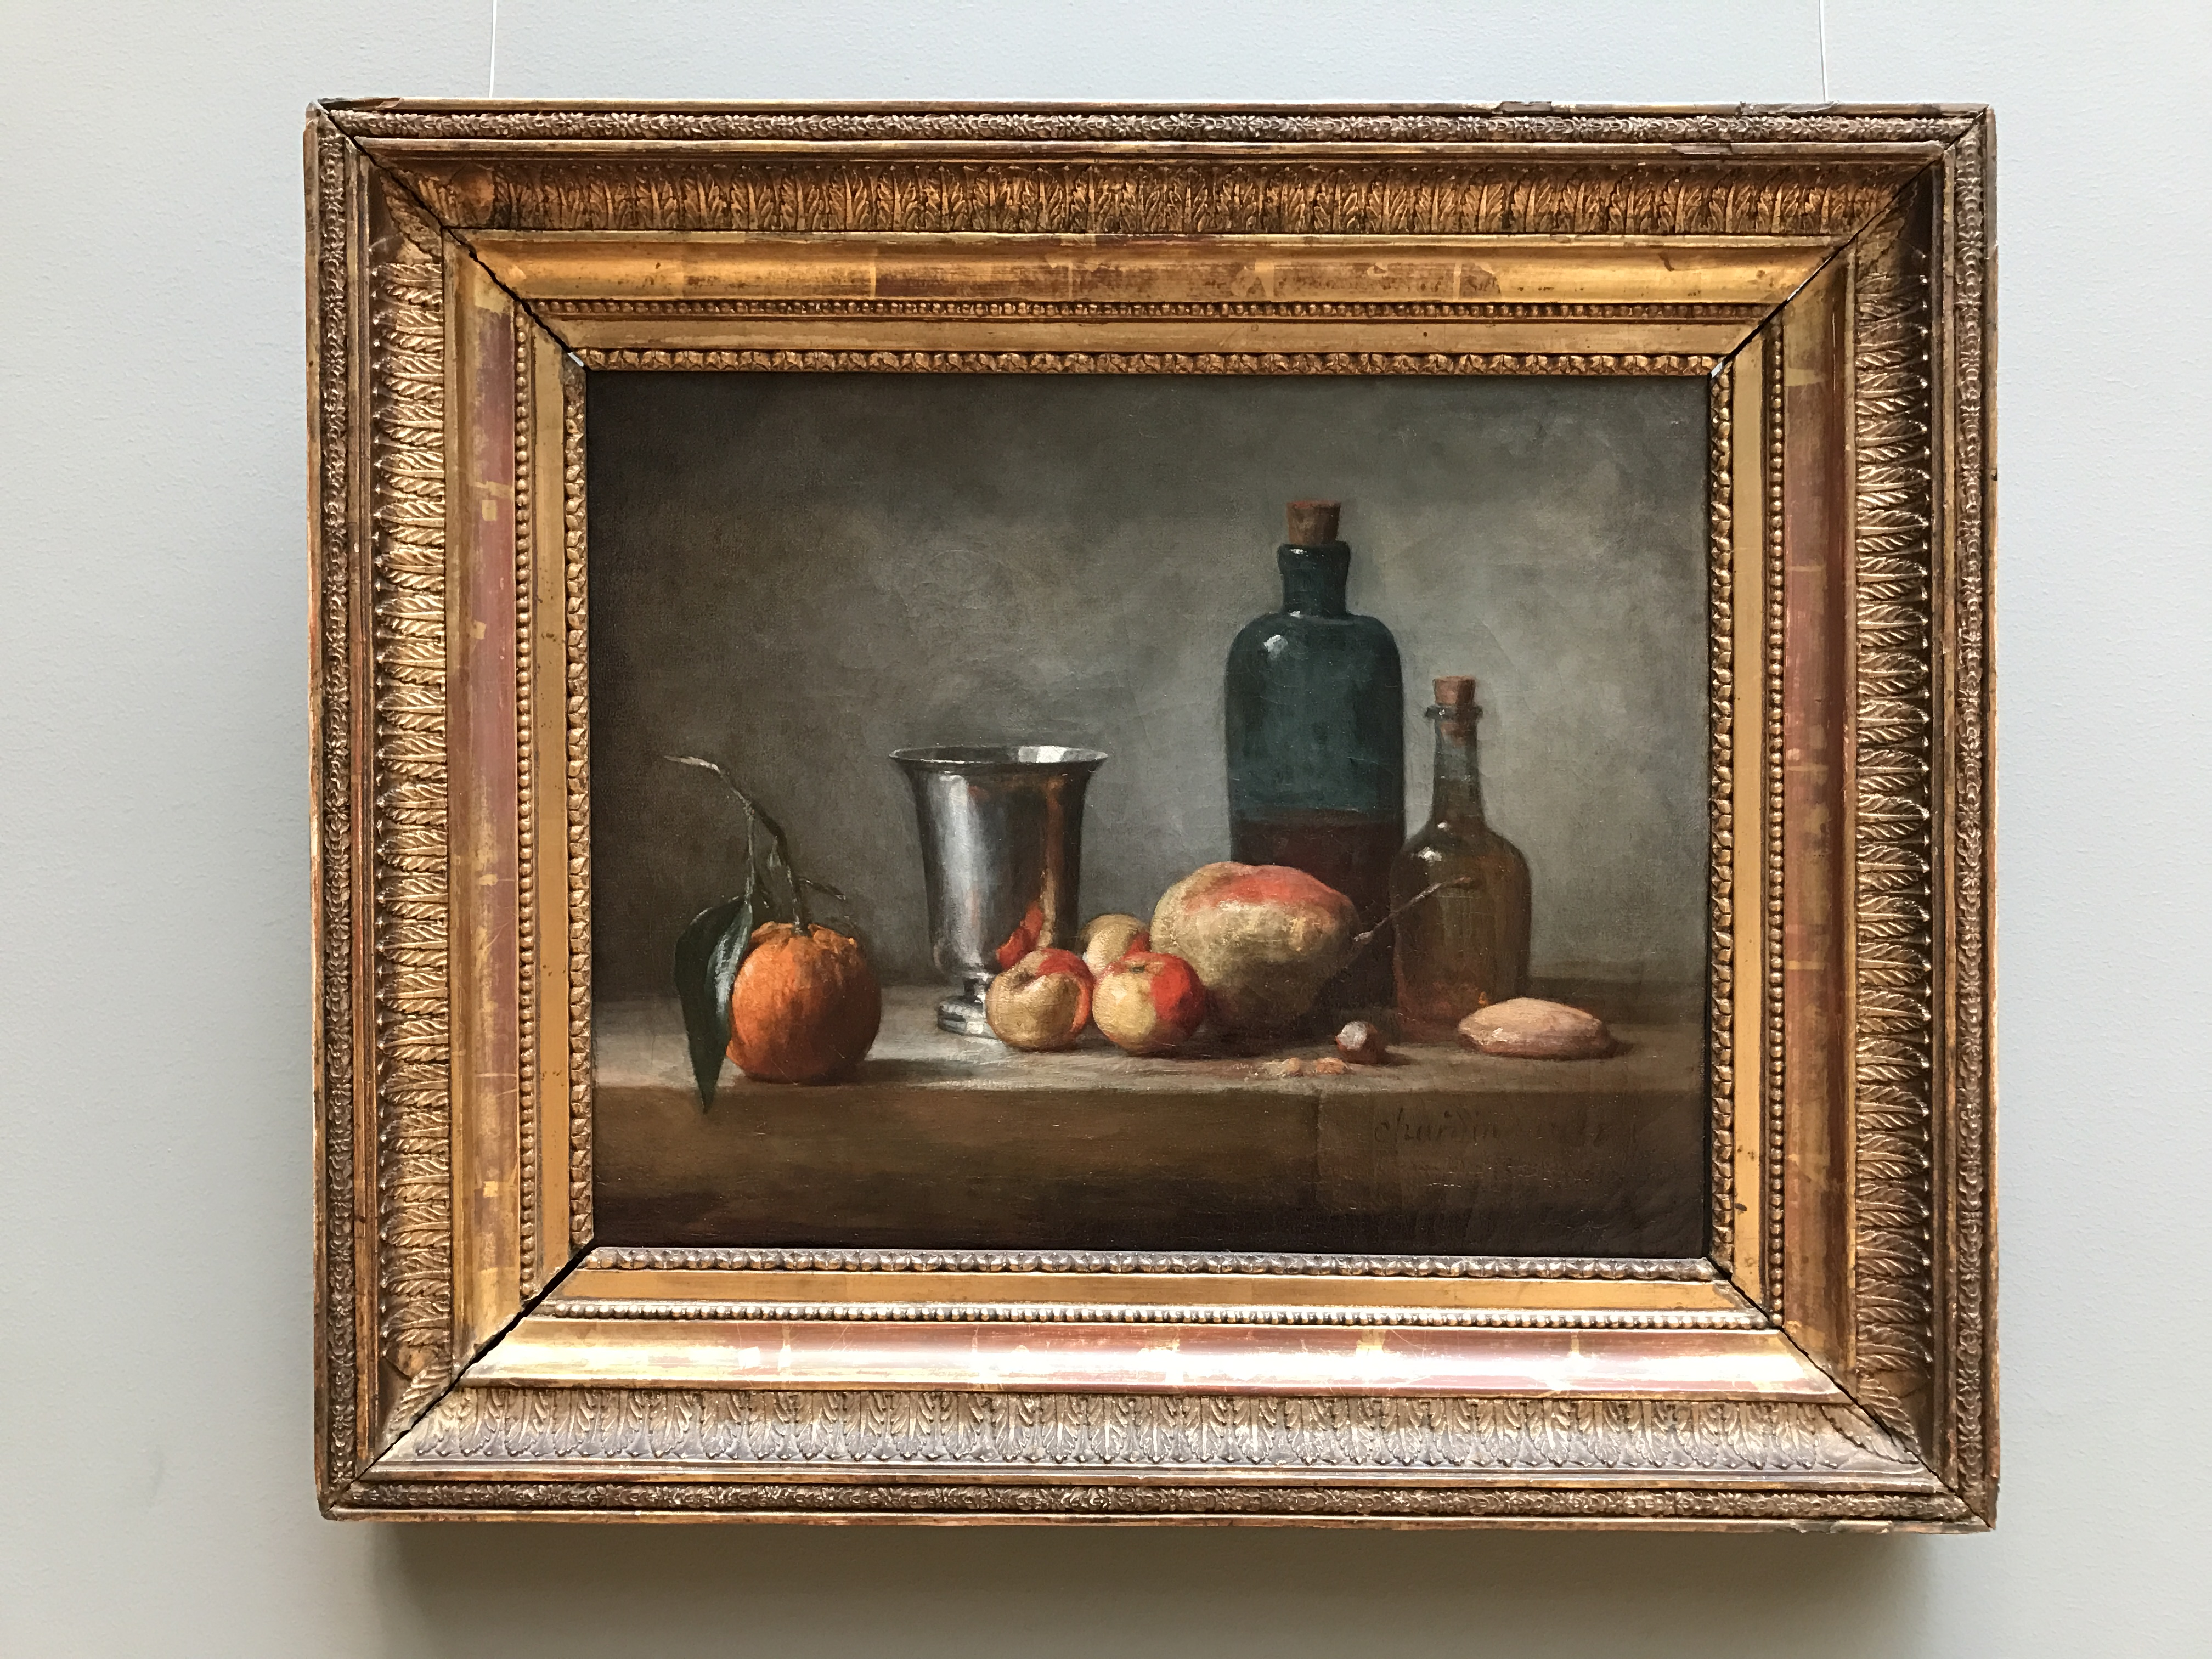 Seville Orange, Silver Goblet, Lady Apples, Pear, and Two Bottles, by Jean Siméon Chardin, framed, my photo